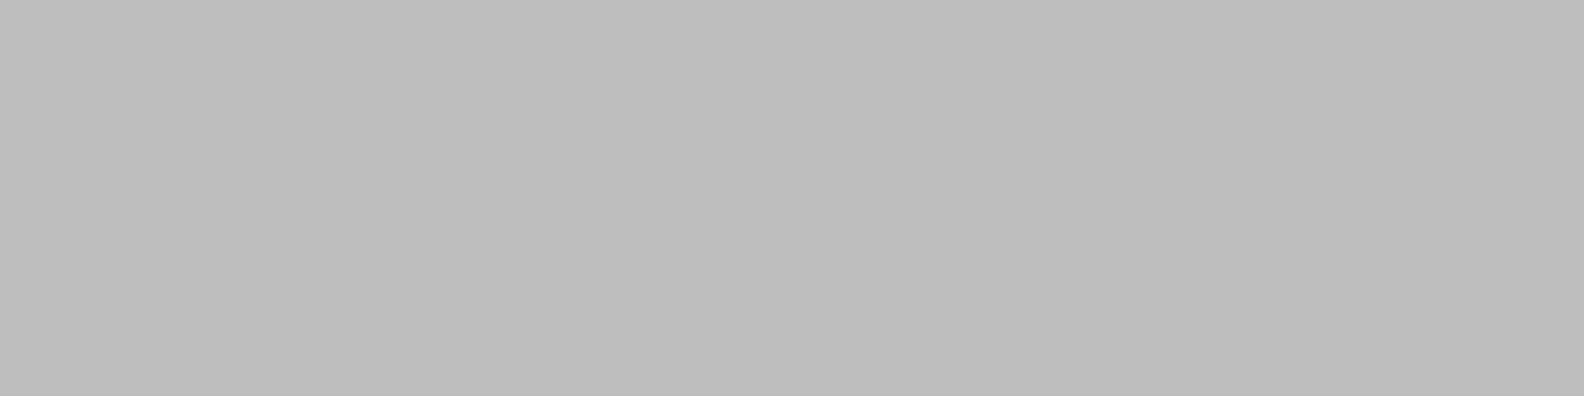 1584x396 Gray X11 Gui Gray Solid Color Background